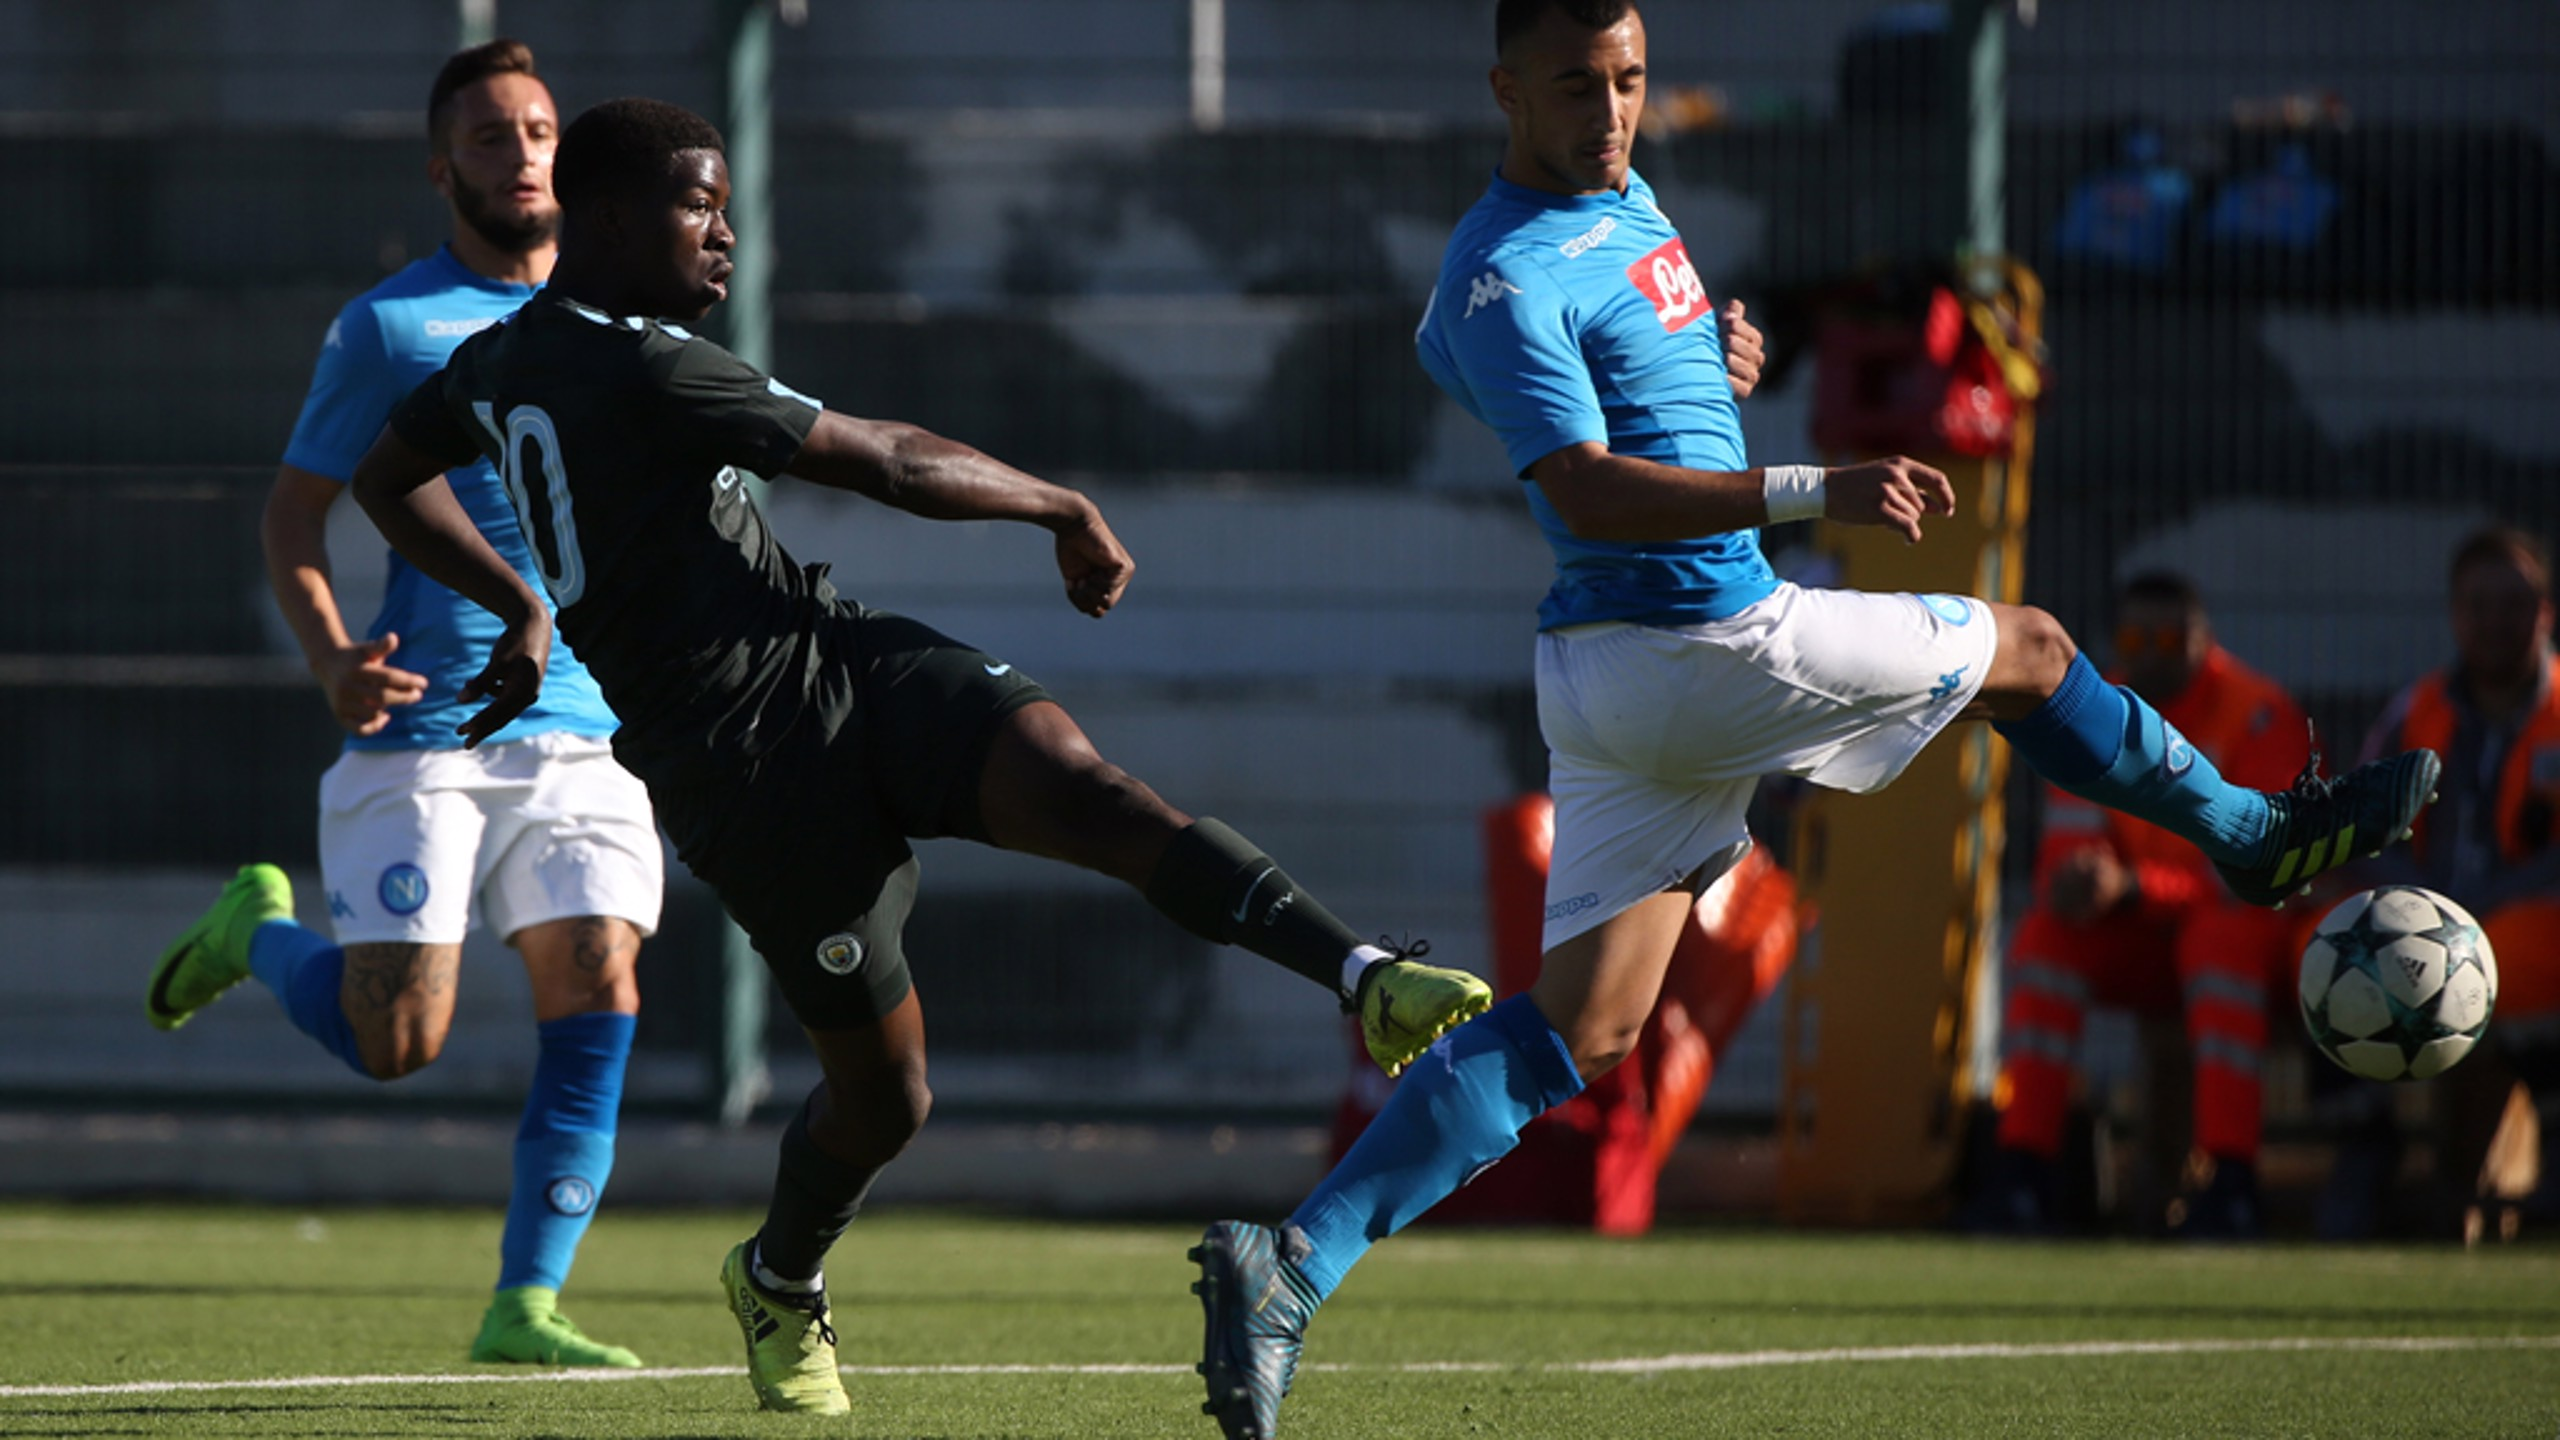 VOLLEY: Taylor Richards strikes against Napoli.